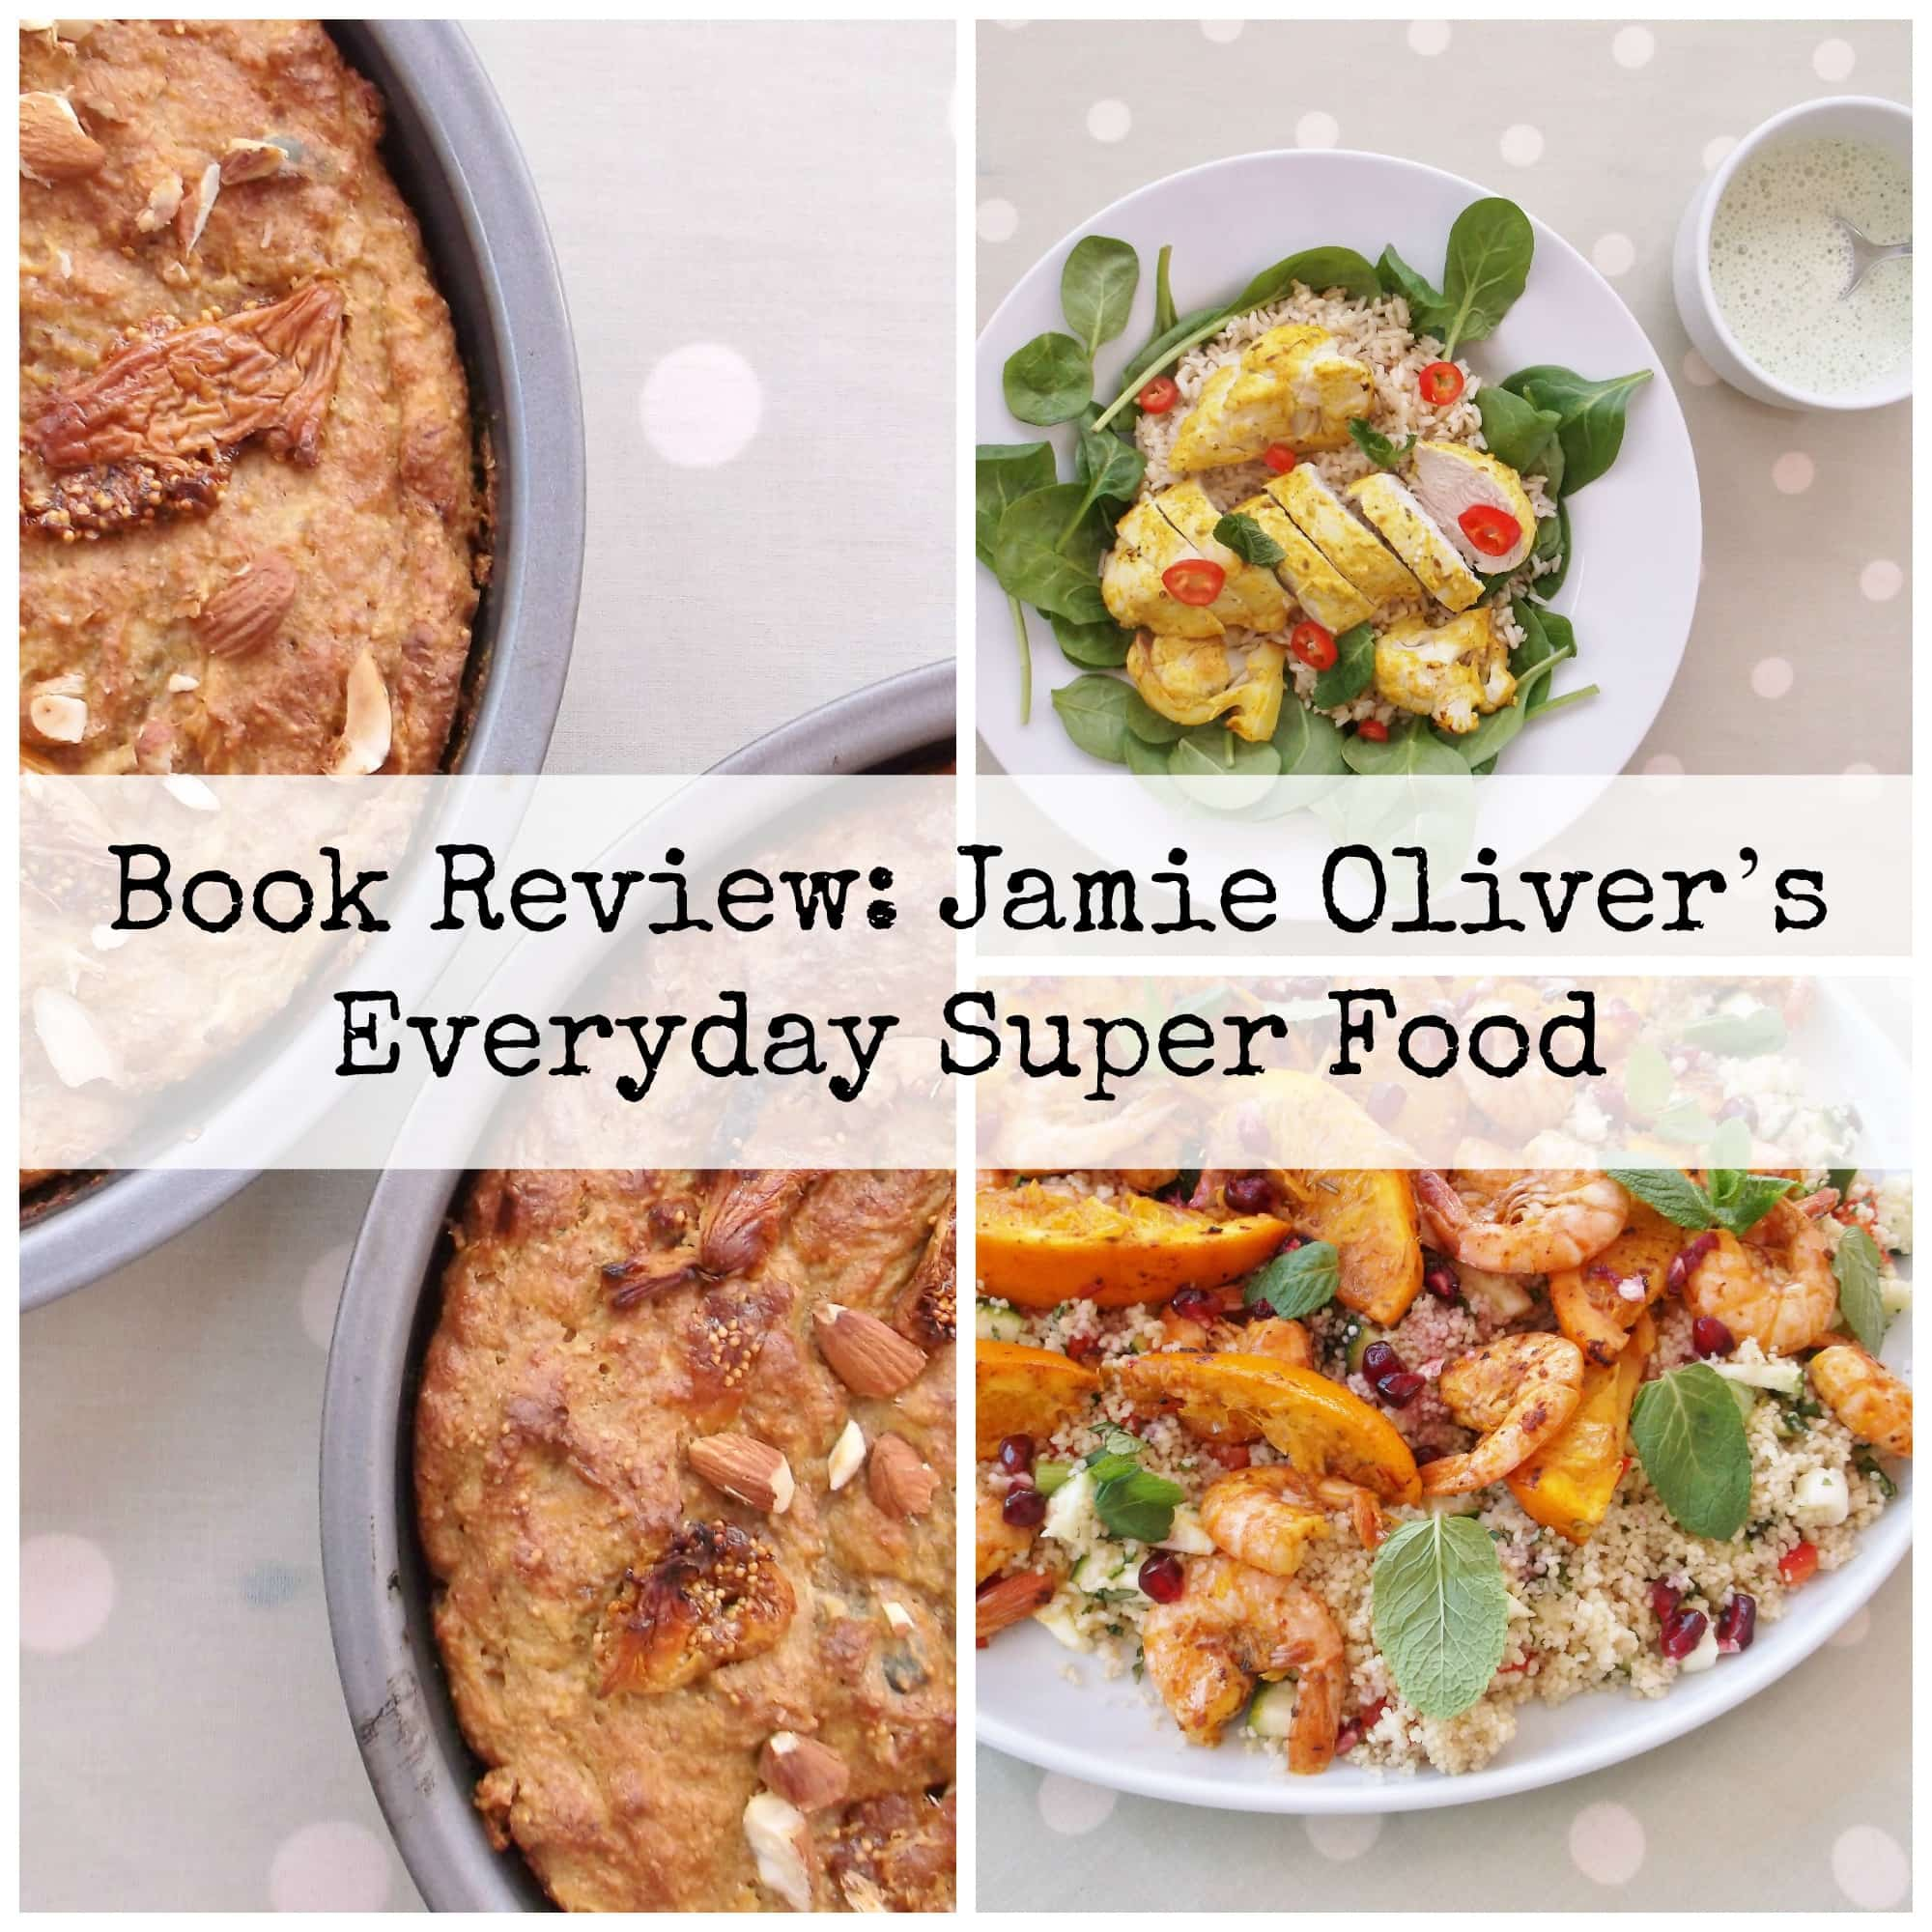 Review of jamie olivers everyday super food easy peasy foodie jamie olivers everyday super food book review forumfinder Images